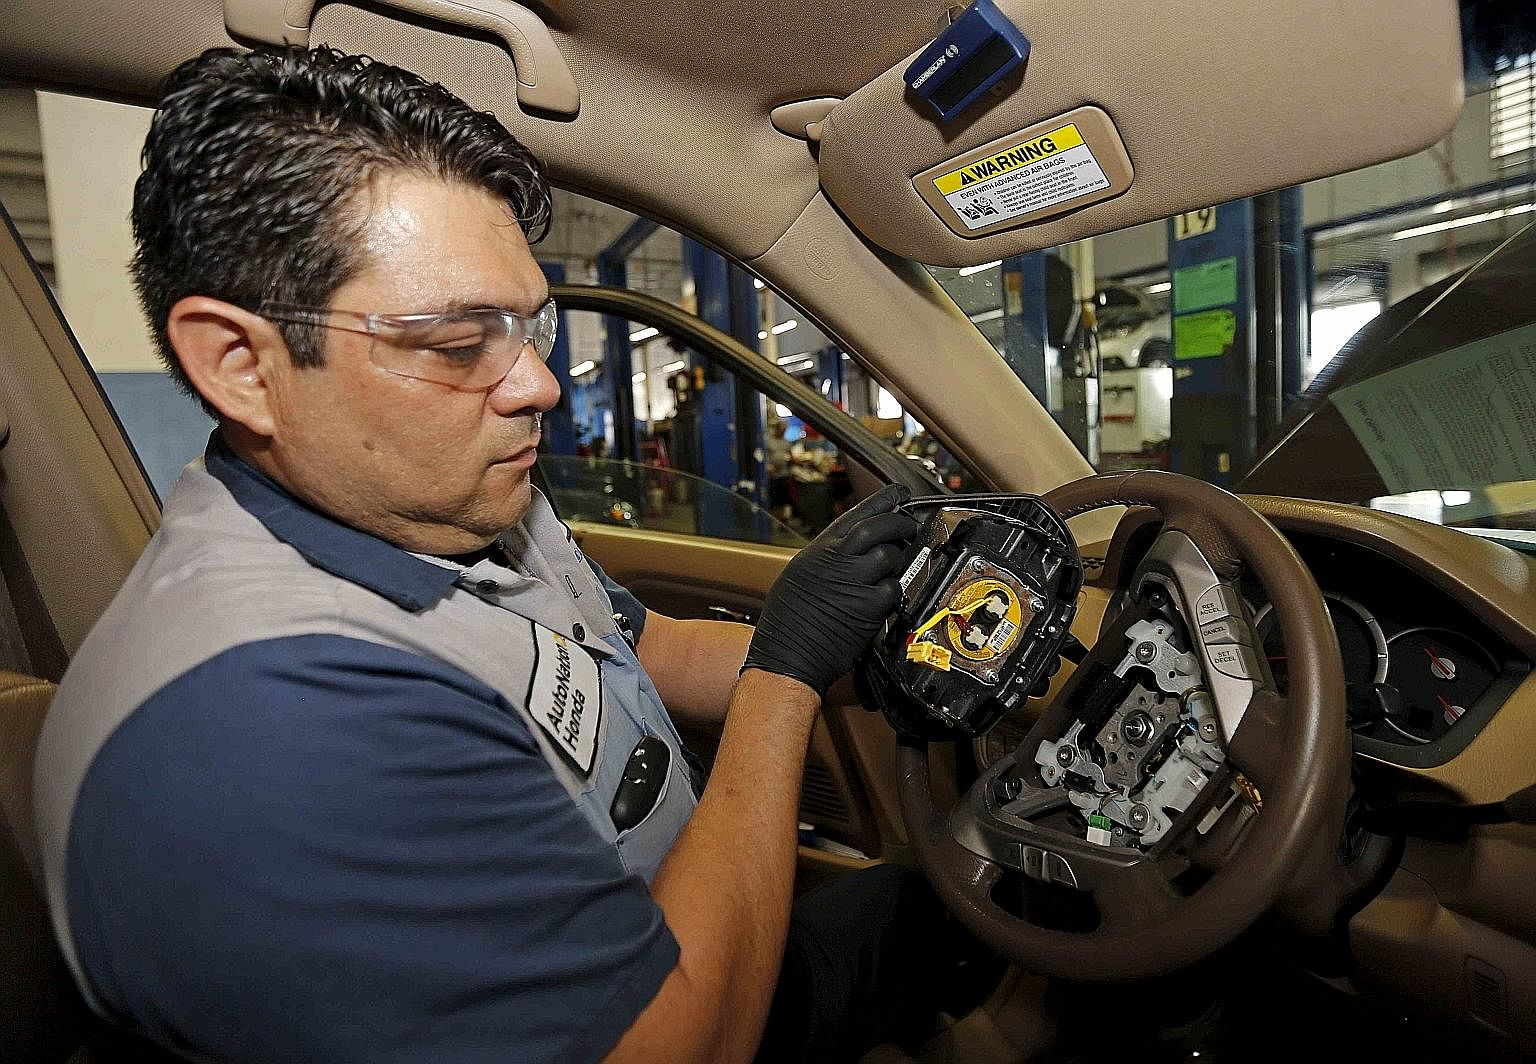 Technician Edward Bonilla holding a recalled Takata airbag inflator after removing it from a Honda car at a dealership service department in Miami, Florida.